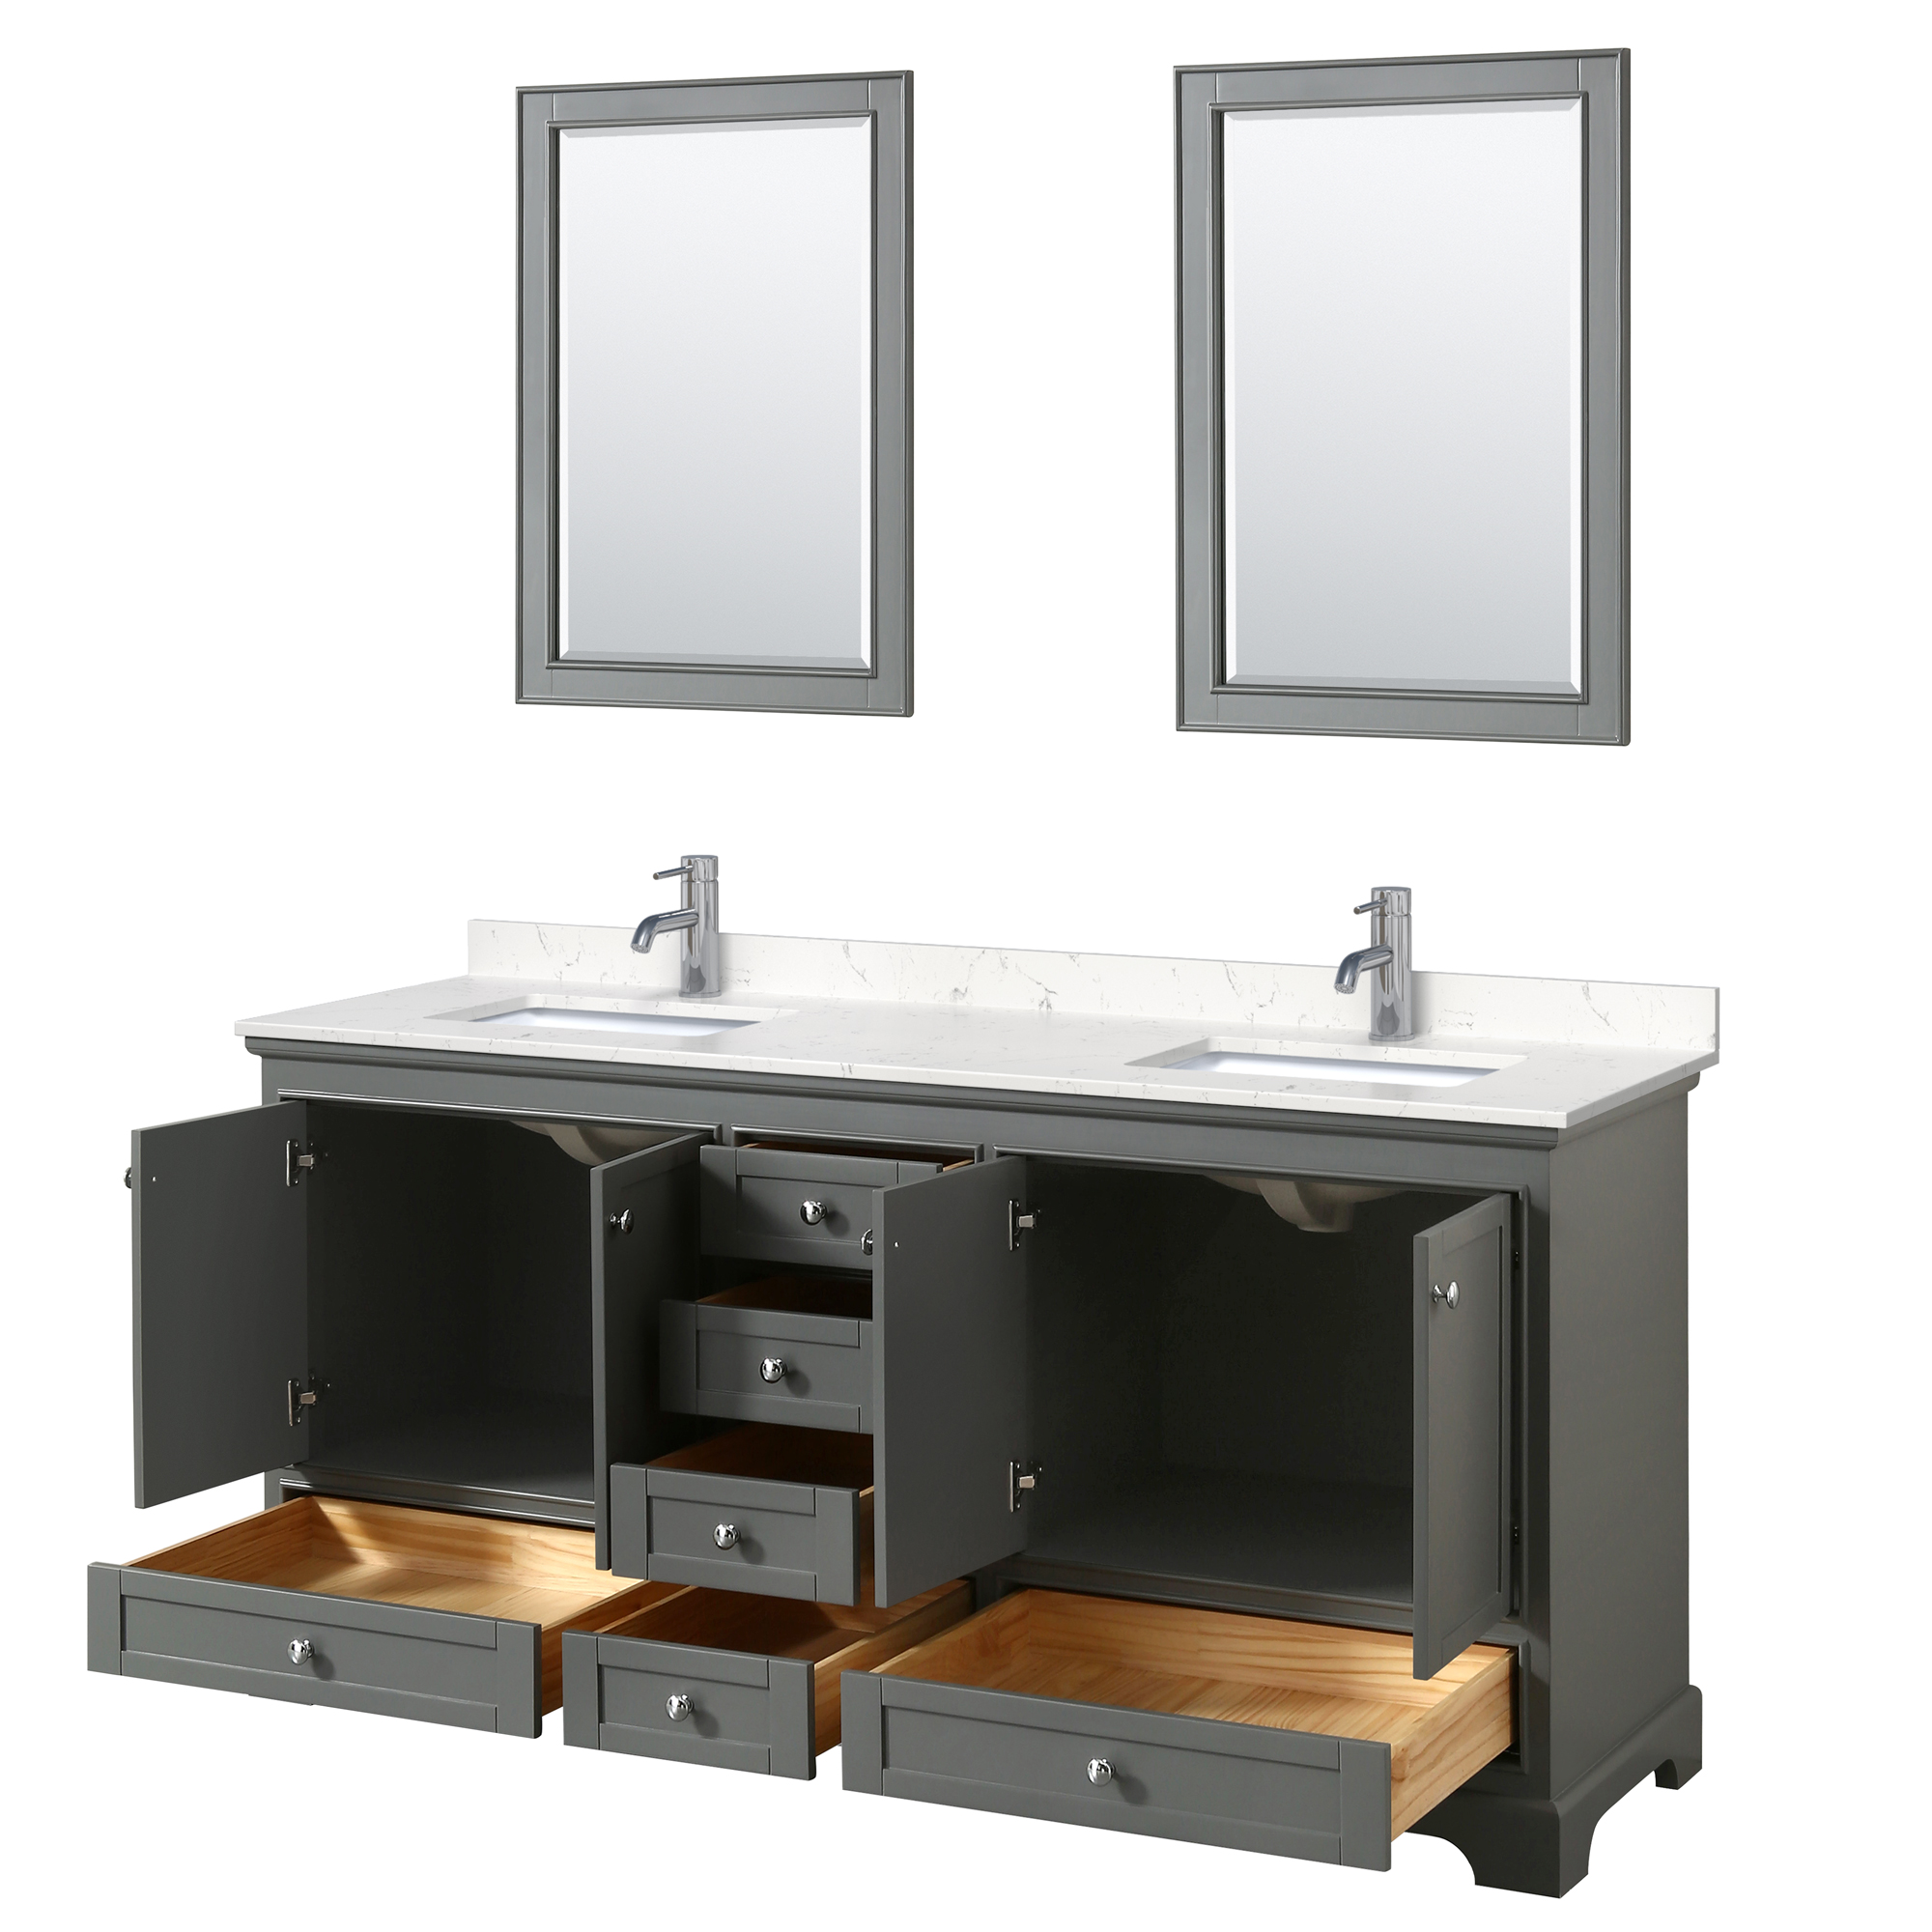 Power Hand Tools And 24 Inch Mirrors No Sinks Wyndham Collection Deborah 72 Inch Double Bathroom Vanity In White No Countertop Tools Home Improvement Bubt Edu Bd